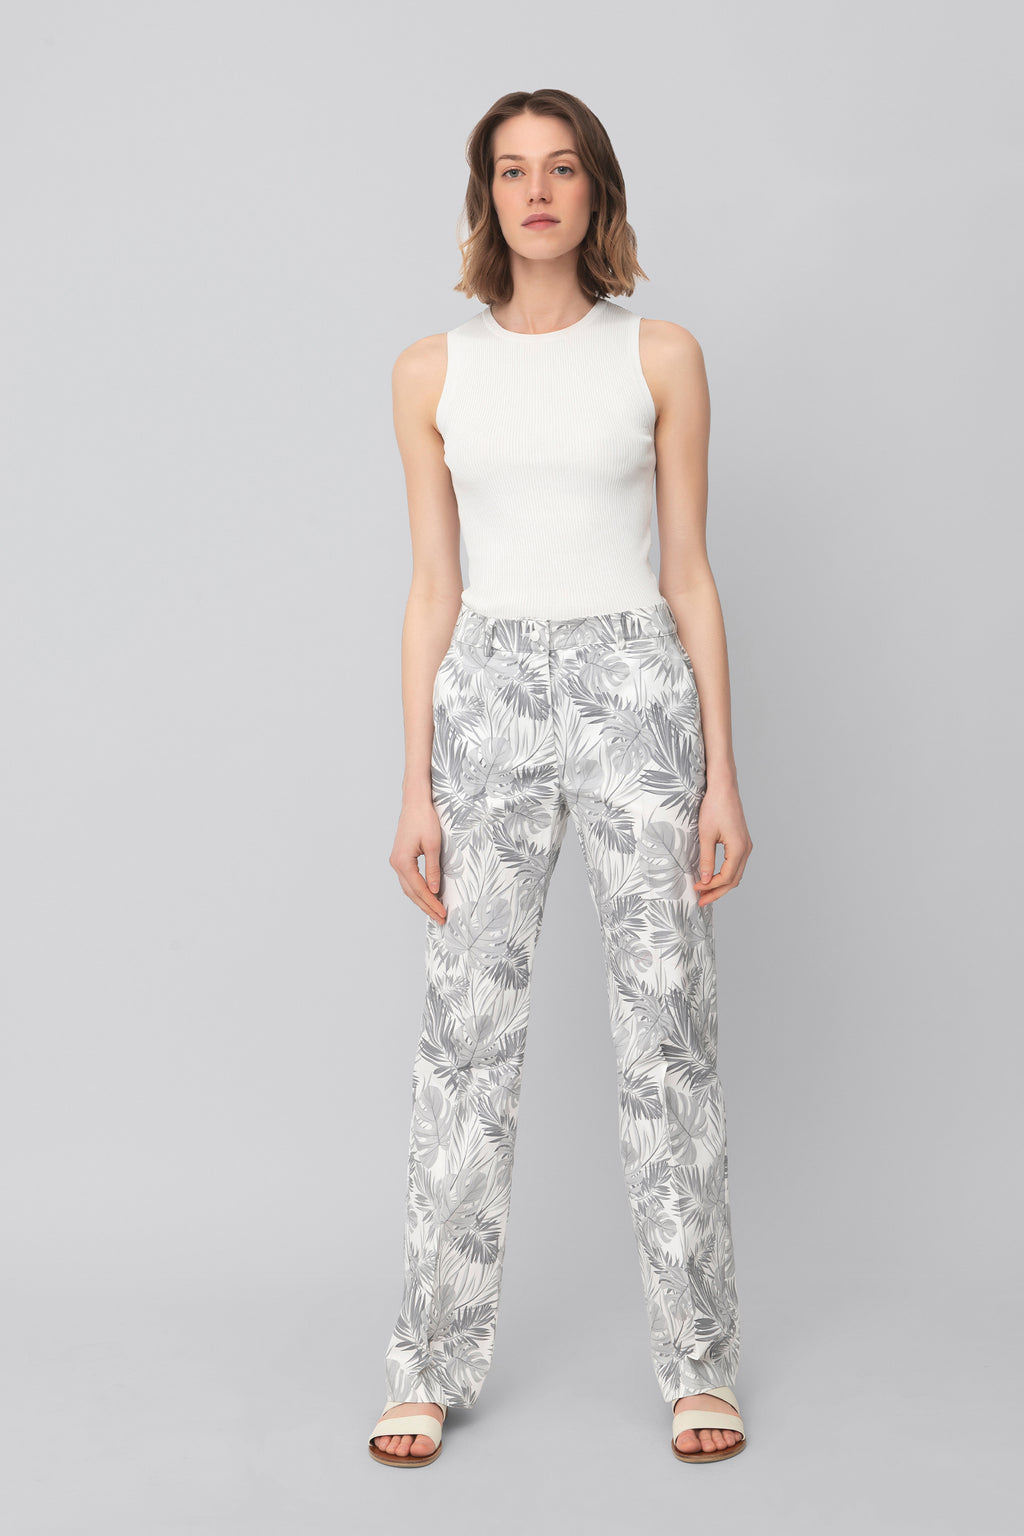 The Printed Cotton Grey Lover Pants